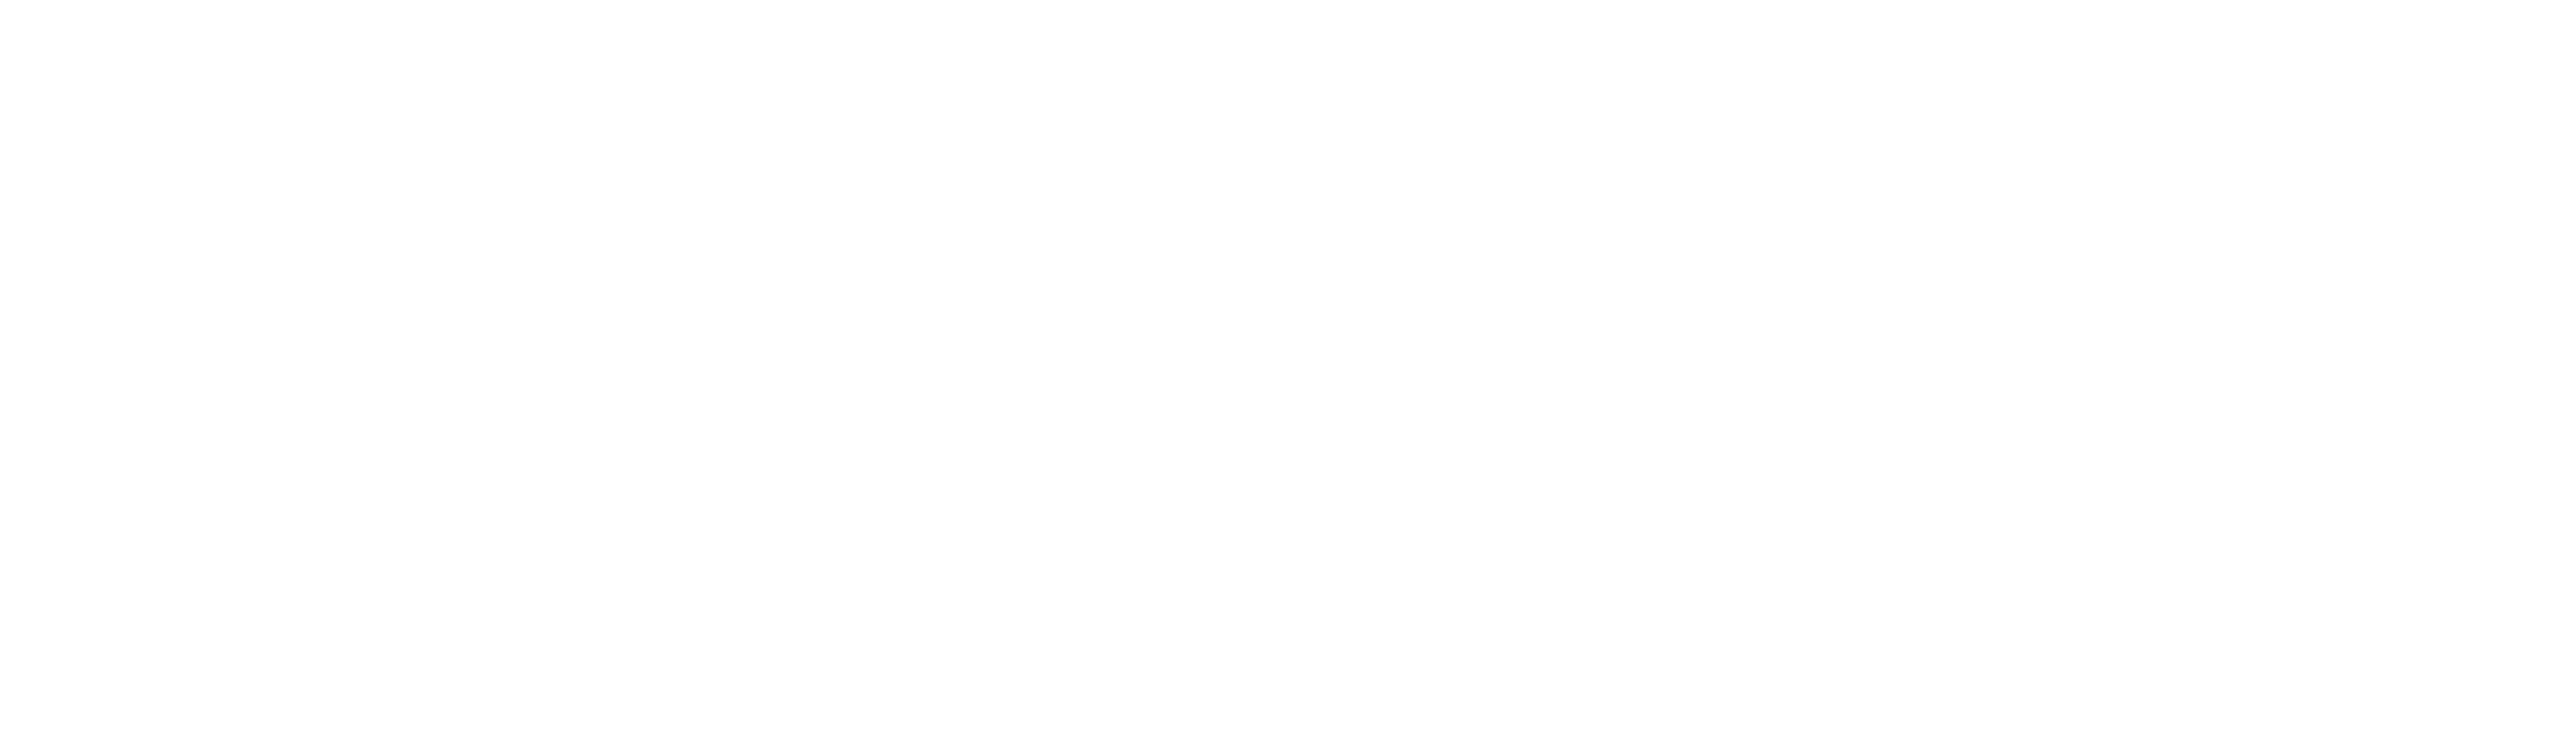 Oculus ISV branded icon by Facebook Inc